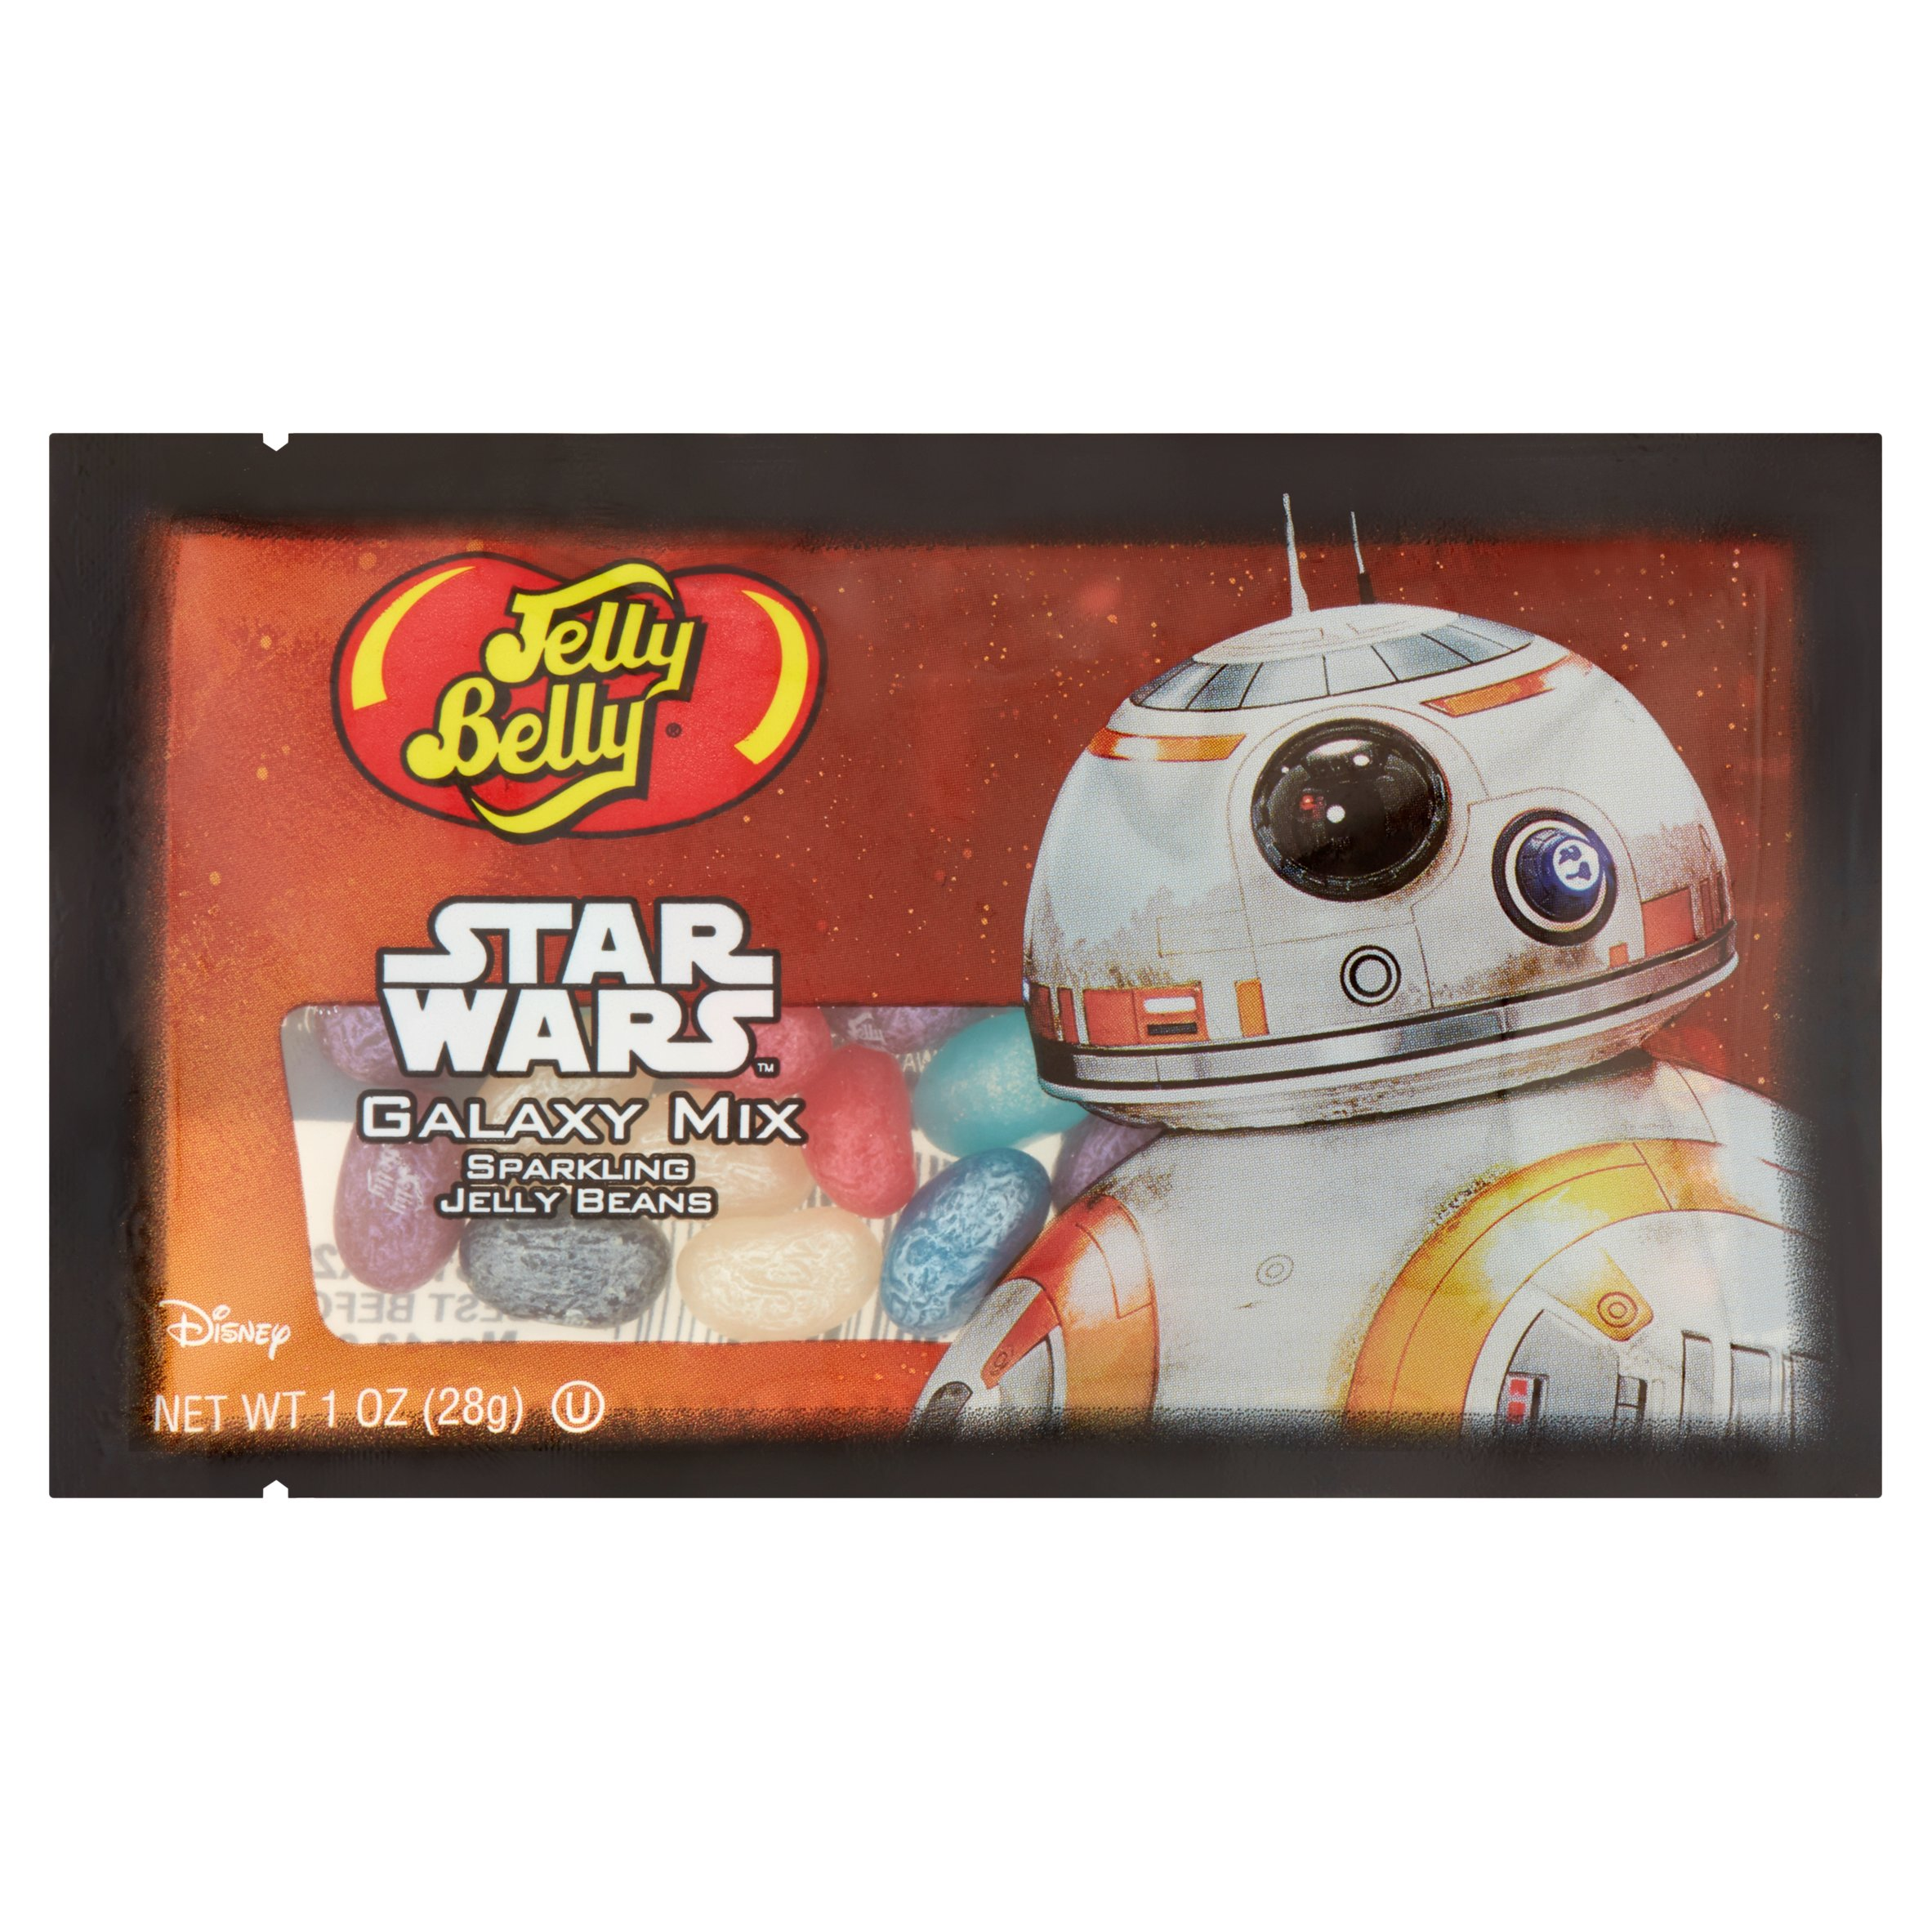 Jelly Belly, Star Wars Sparkling Galaxy Mix Jelly Bean 1 Oz